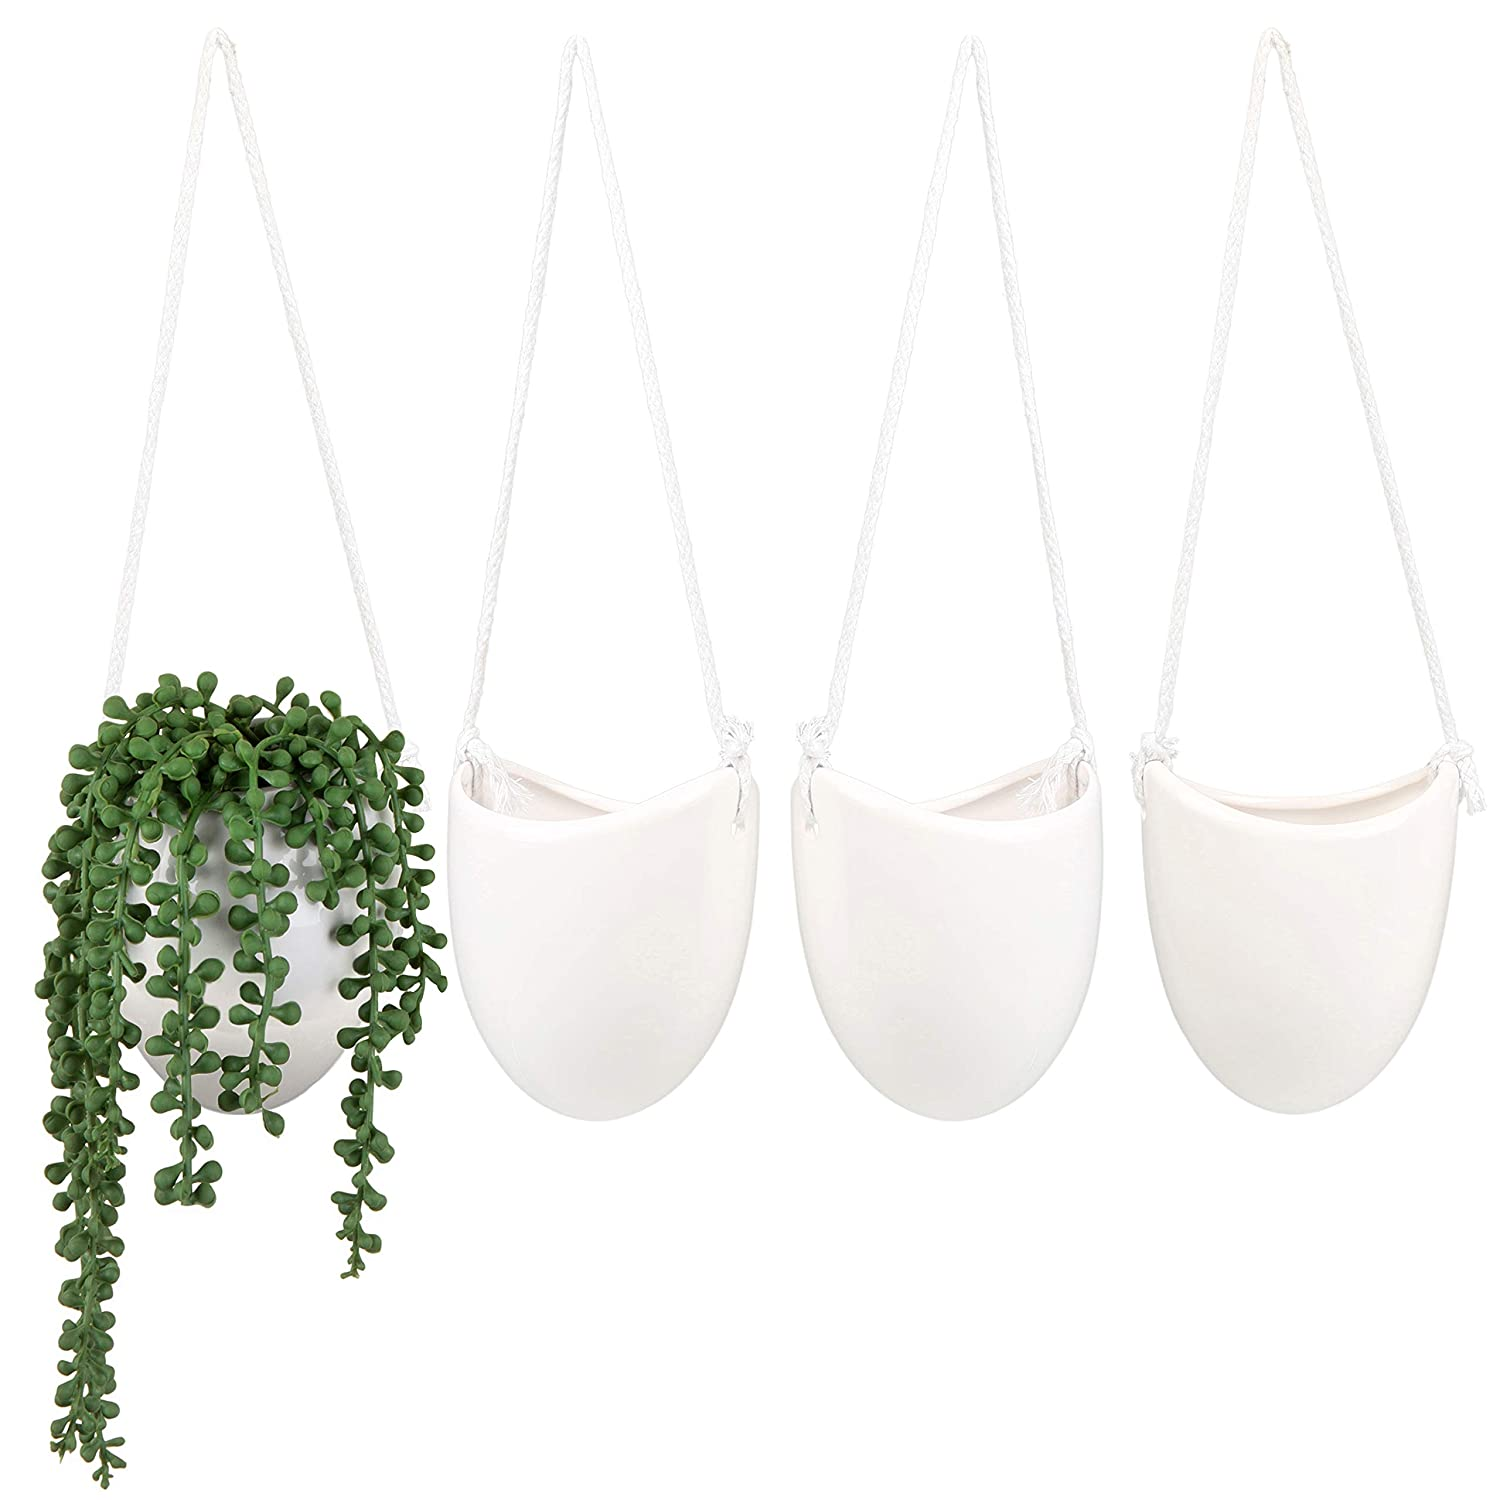 MyGift Decorative White Ceramic Wall-Hanging 5-Inch Pots for Succulent Plants, Set of 4